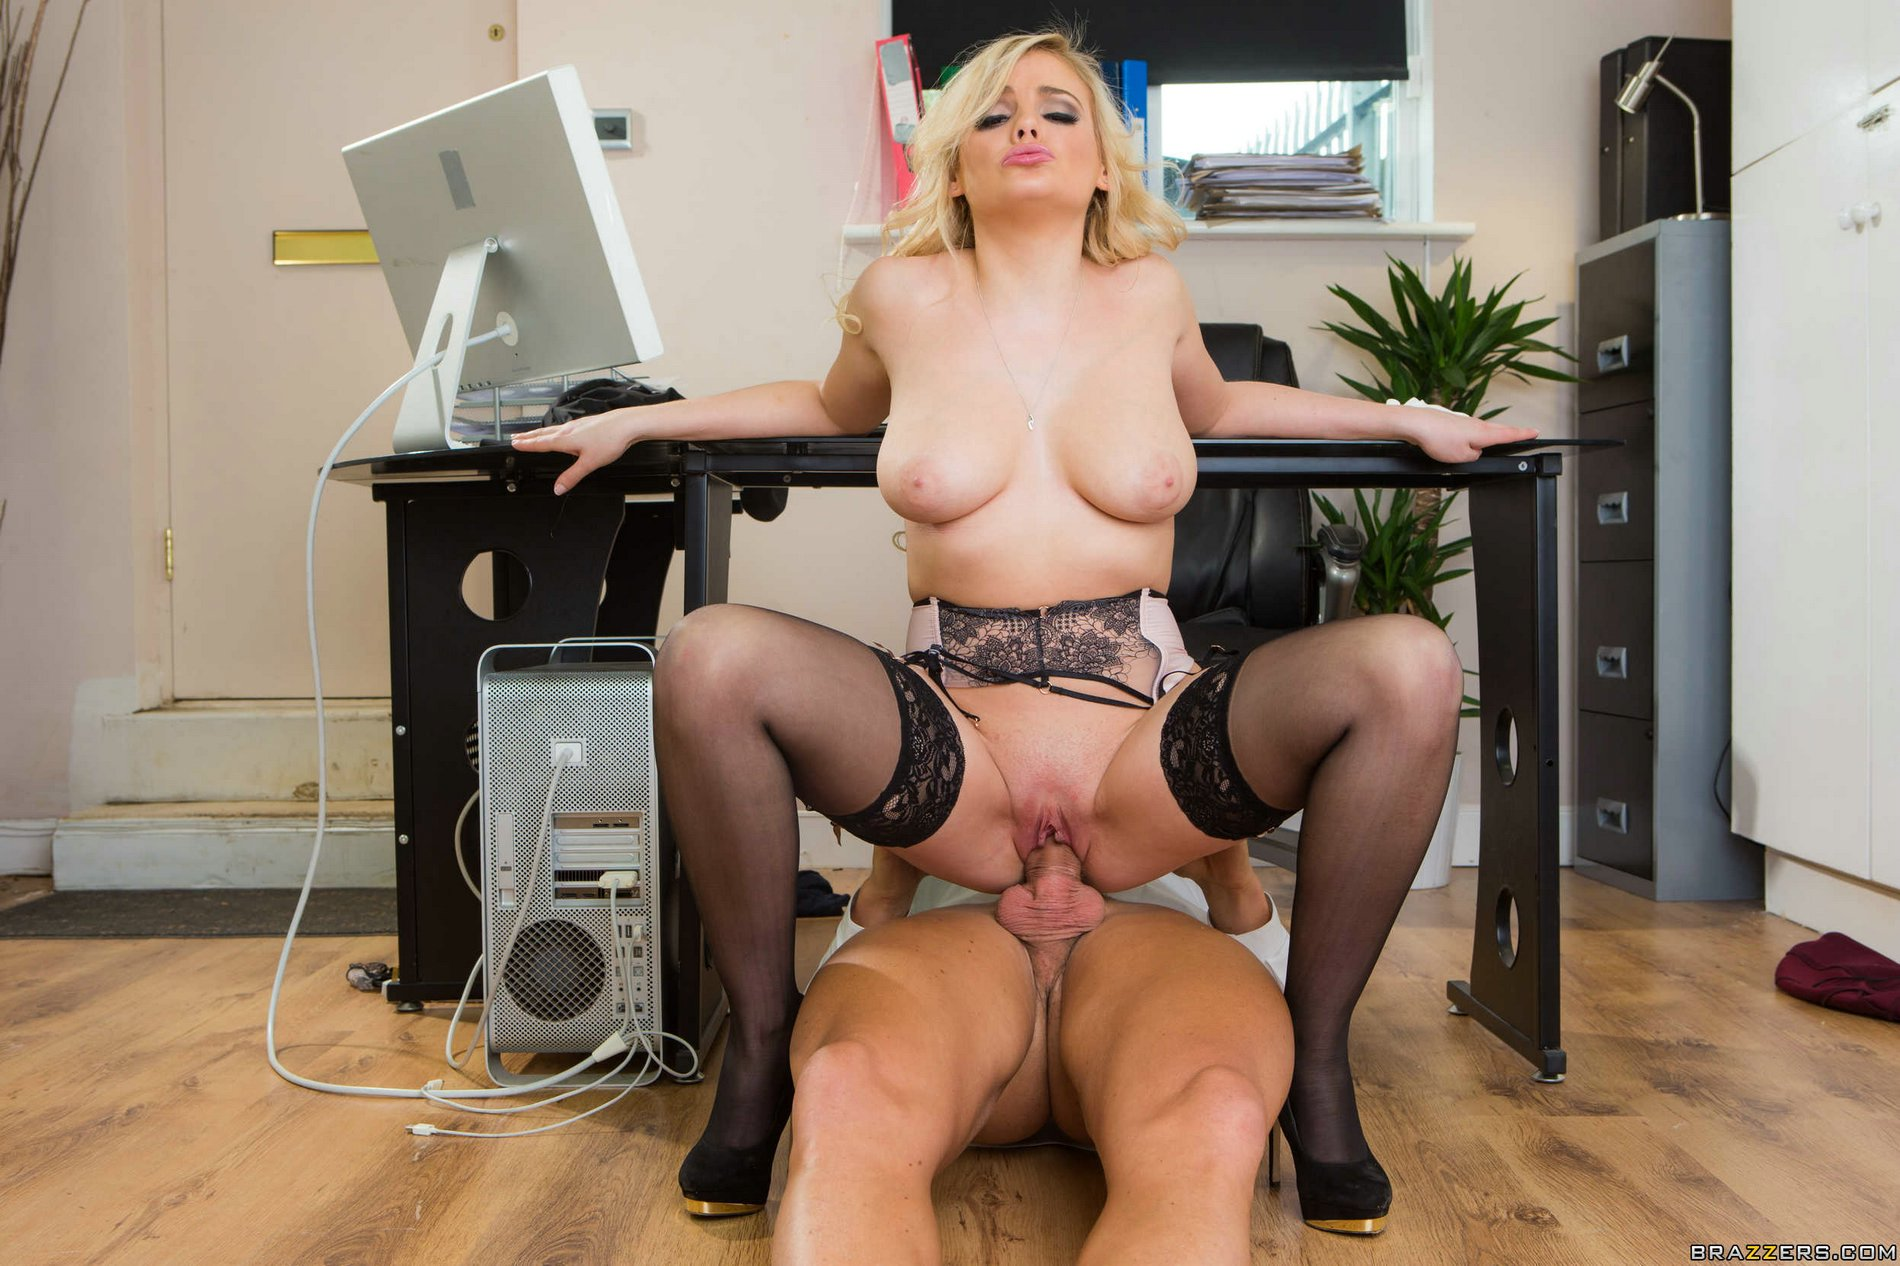 Katy jayne gets fucked by black dick 5